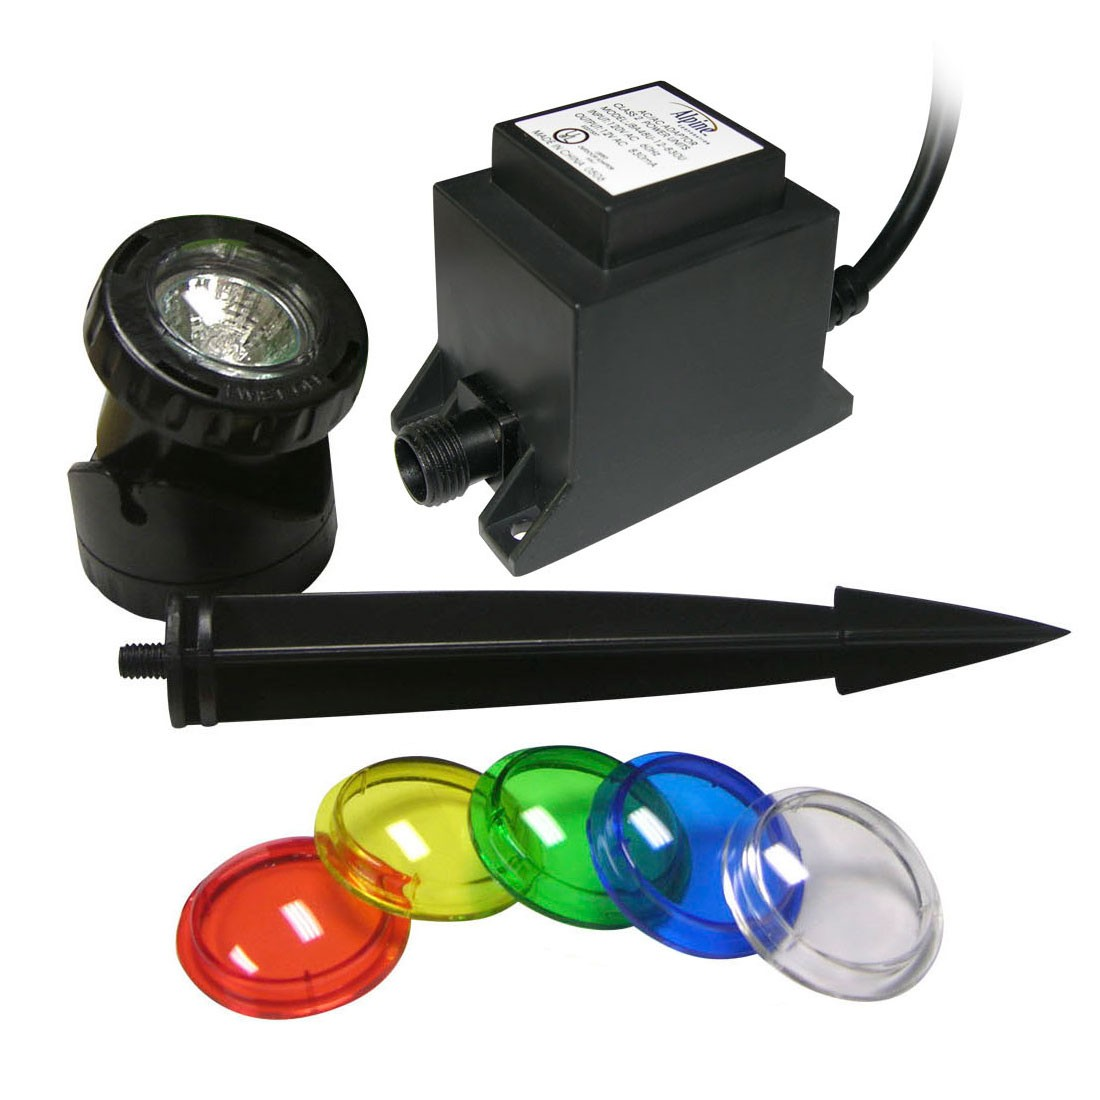 Power Beam 20W Halogen Pond & Garden Lights w/ Stakes & Lenses